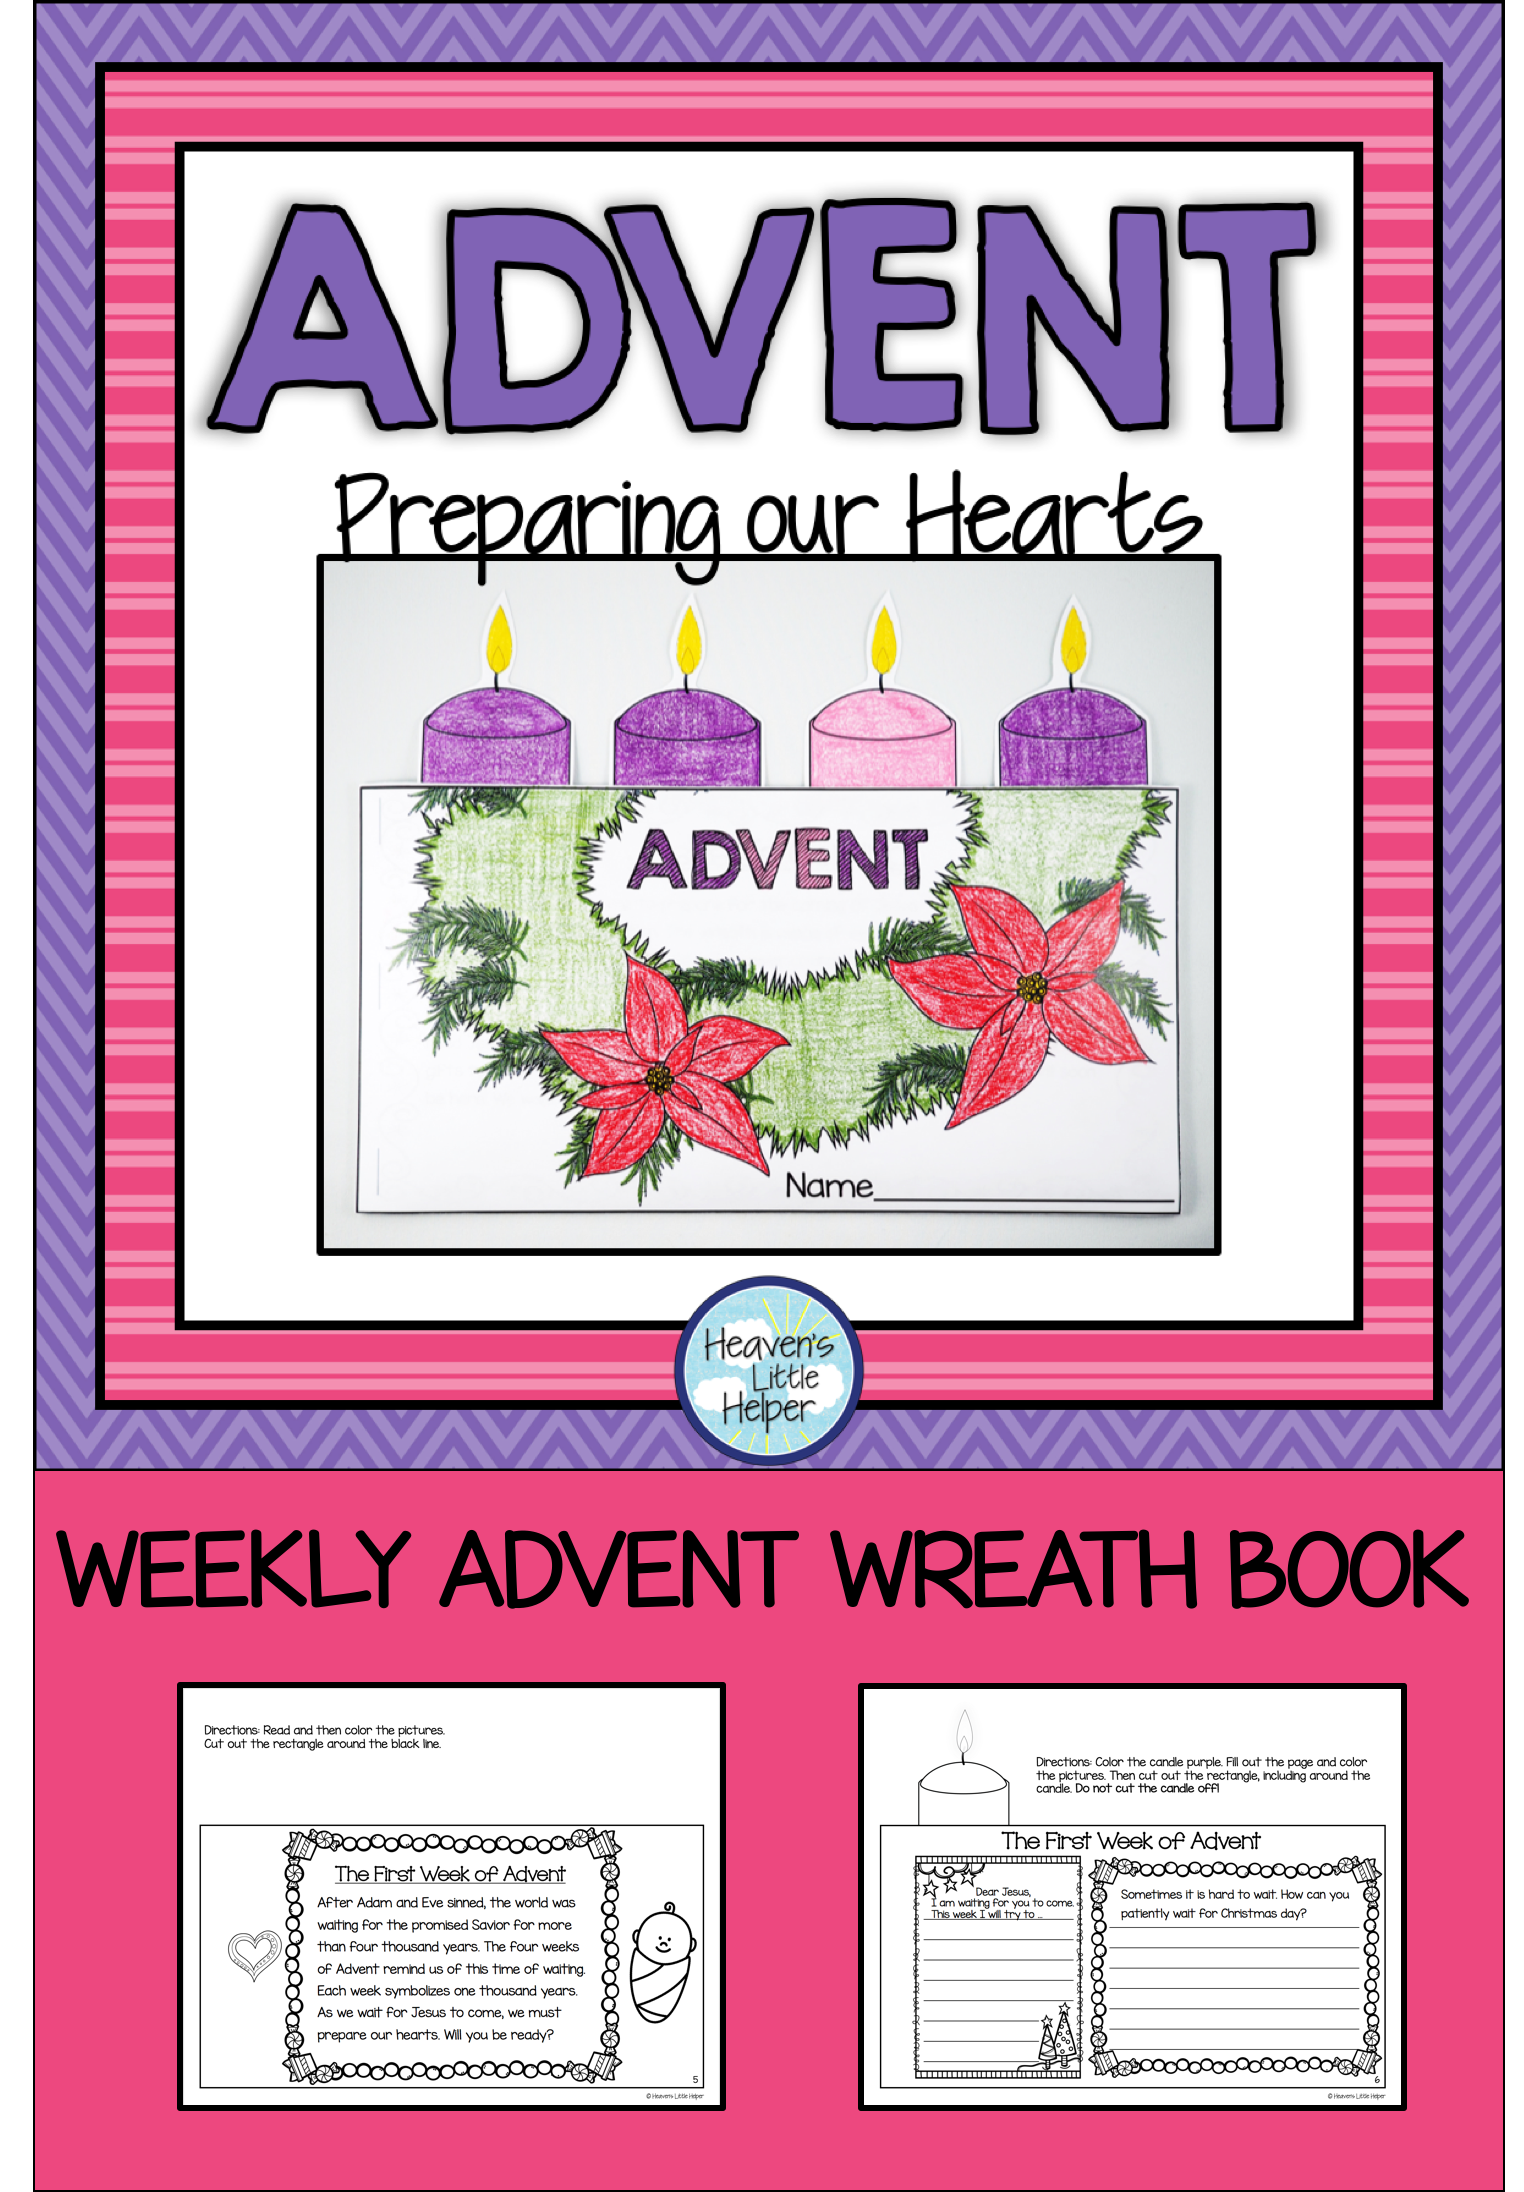 Advent Wreath Book Project | Activities, Advent wreaths and ...